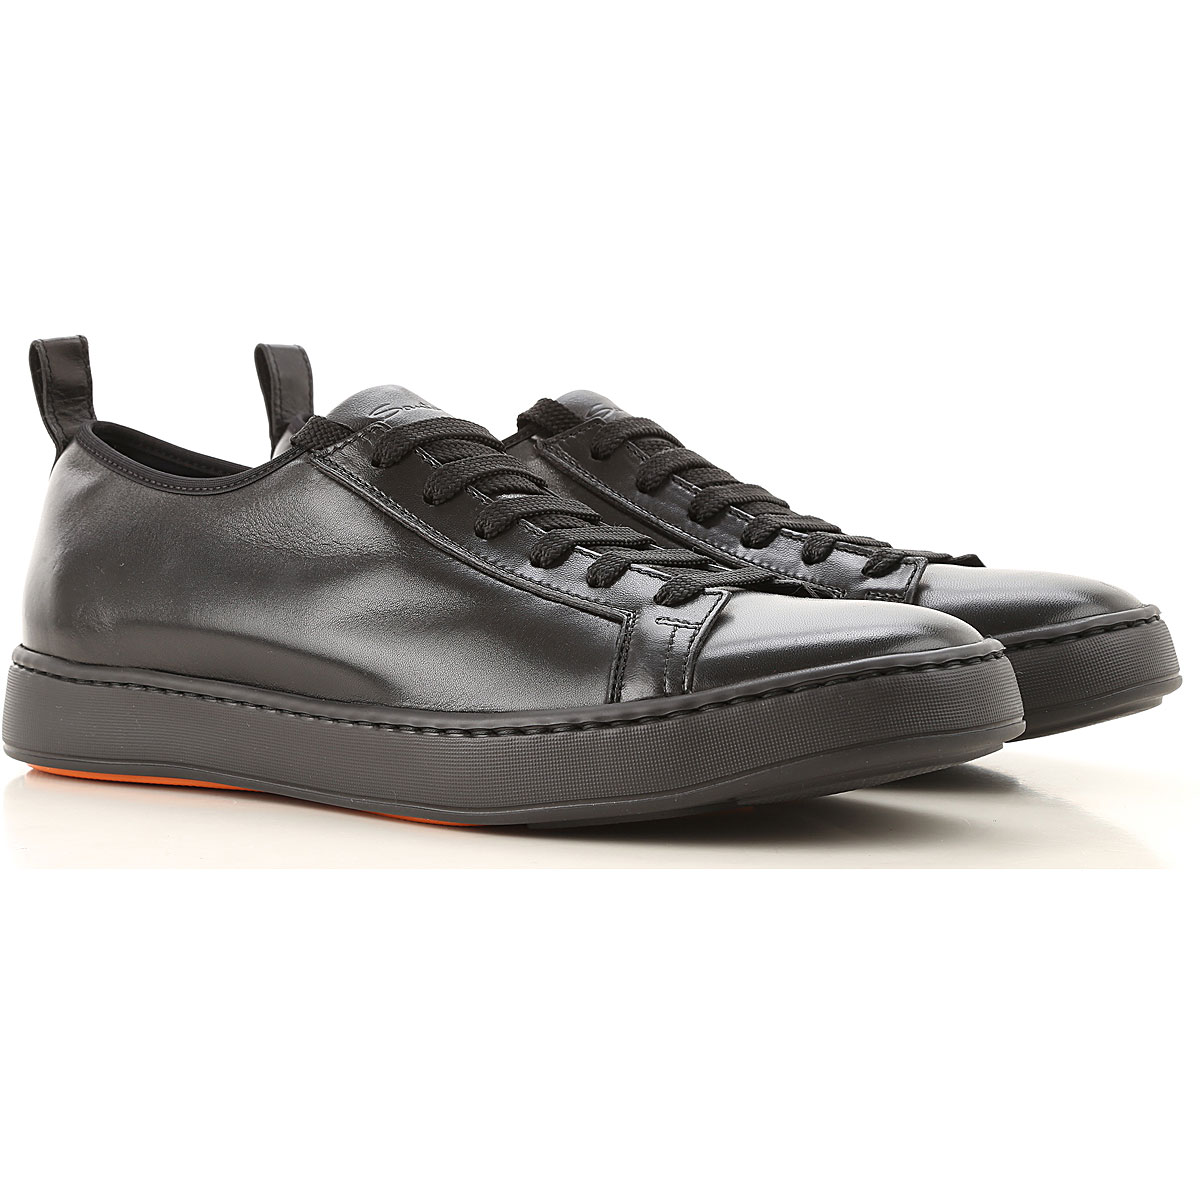 Santoni Sneakers for Men On Sale in Outlet, Black, Leather, 2019, 13 6